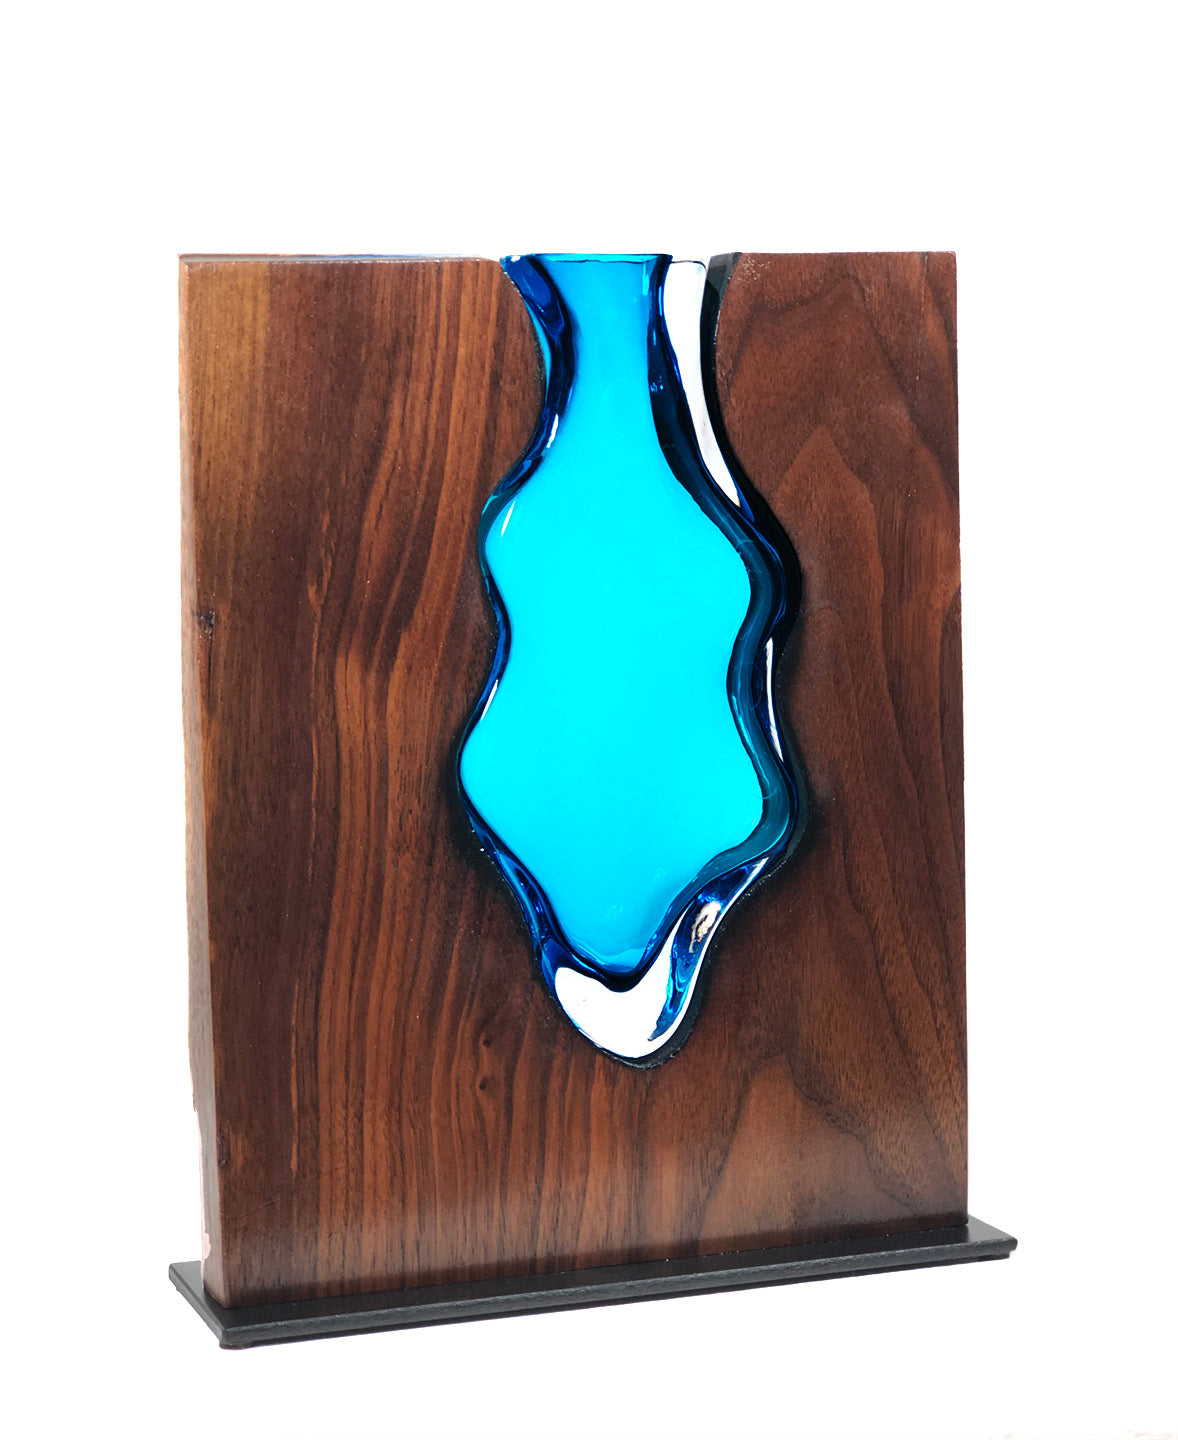 "Walnut Wood with Handblown ""Aqua"" Glass Blackberry"